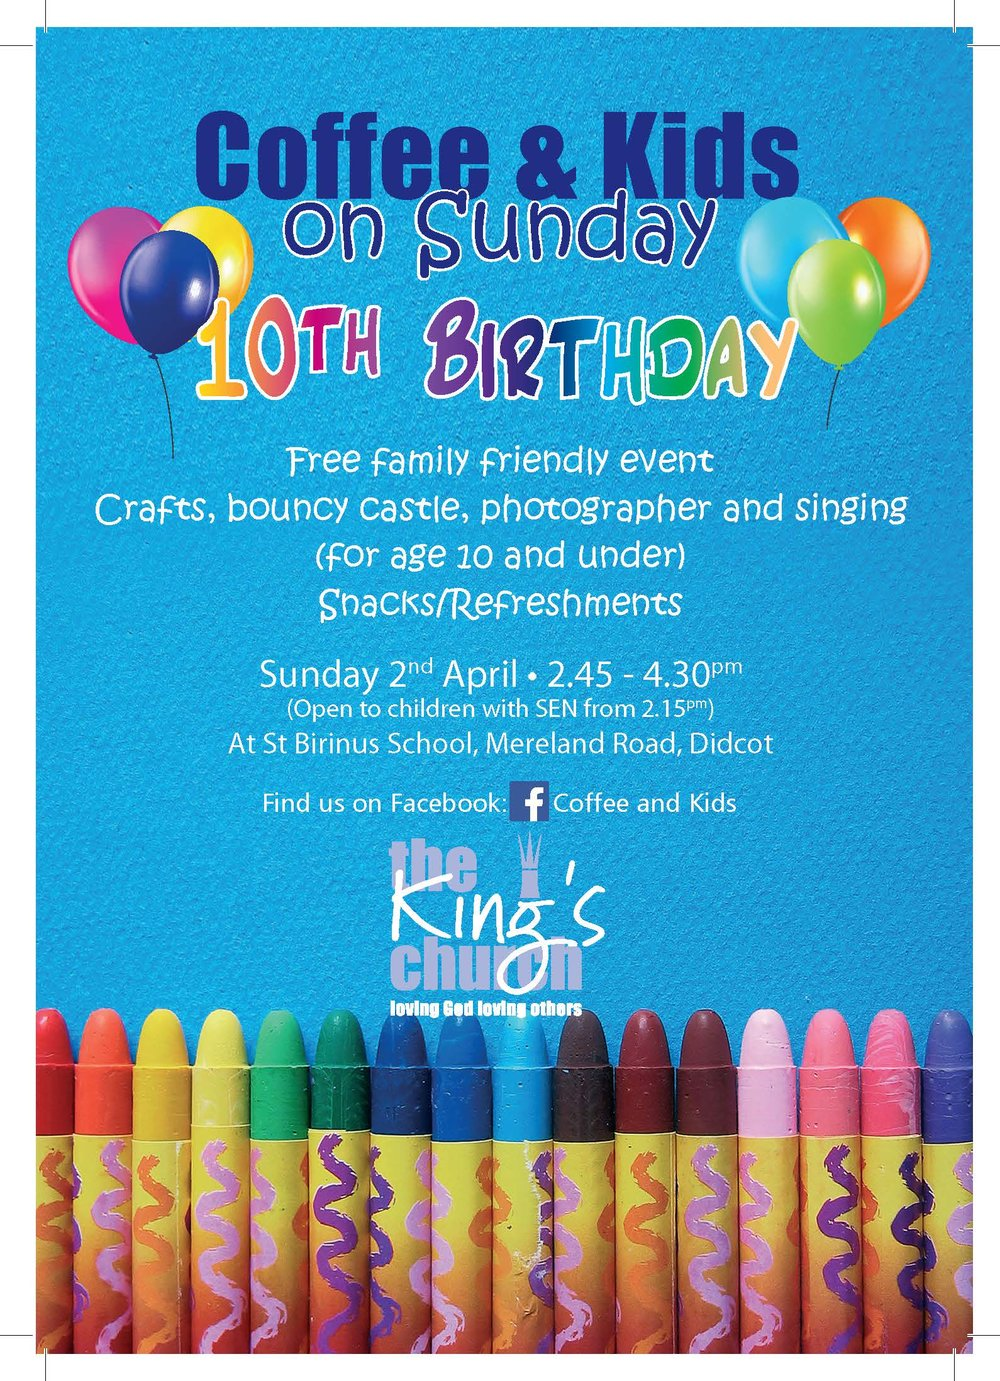 Coffee and Kids Sunday 10th birthday invite.jpg